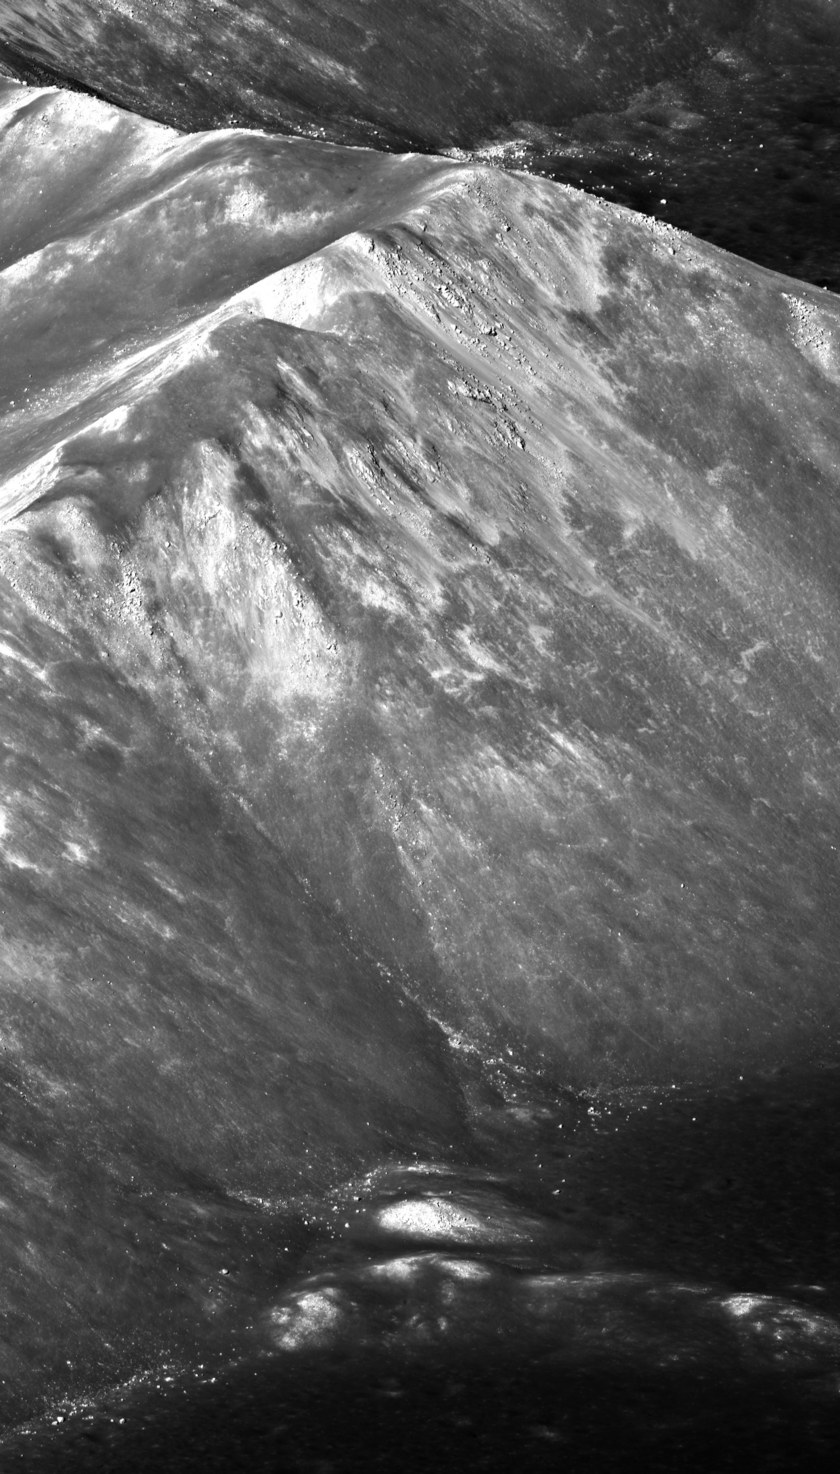 Detail view of Tsiolkovsky crater central peak